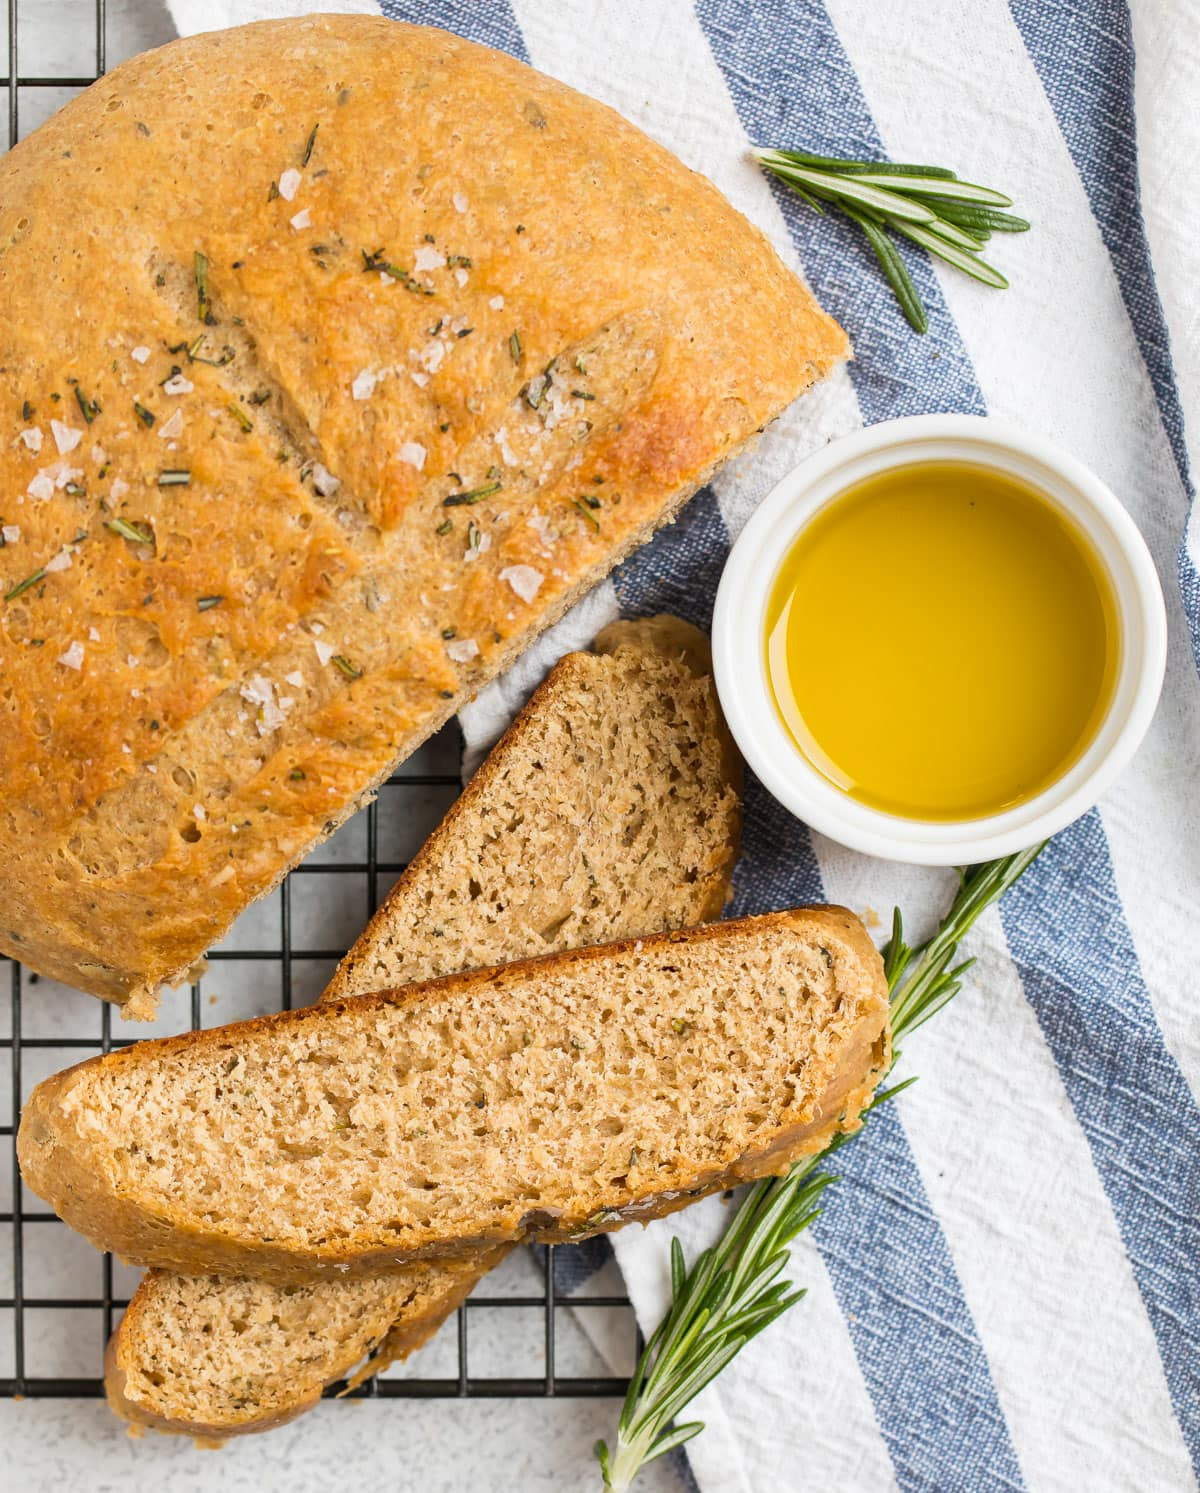 slices of rosemary olive oil bread